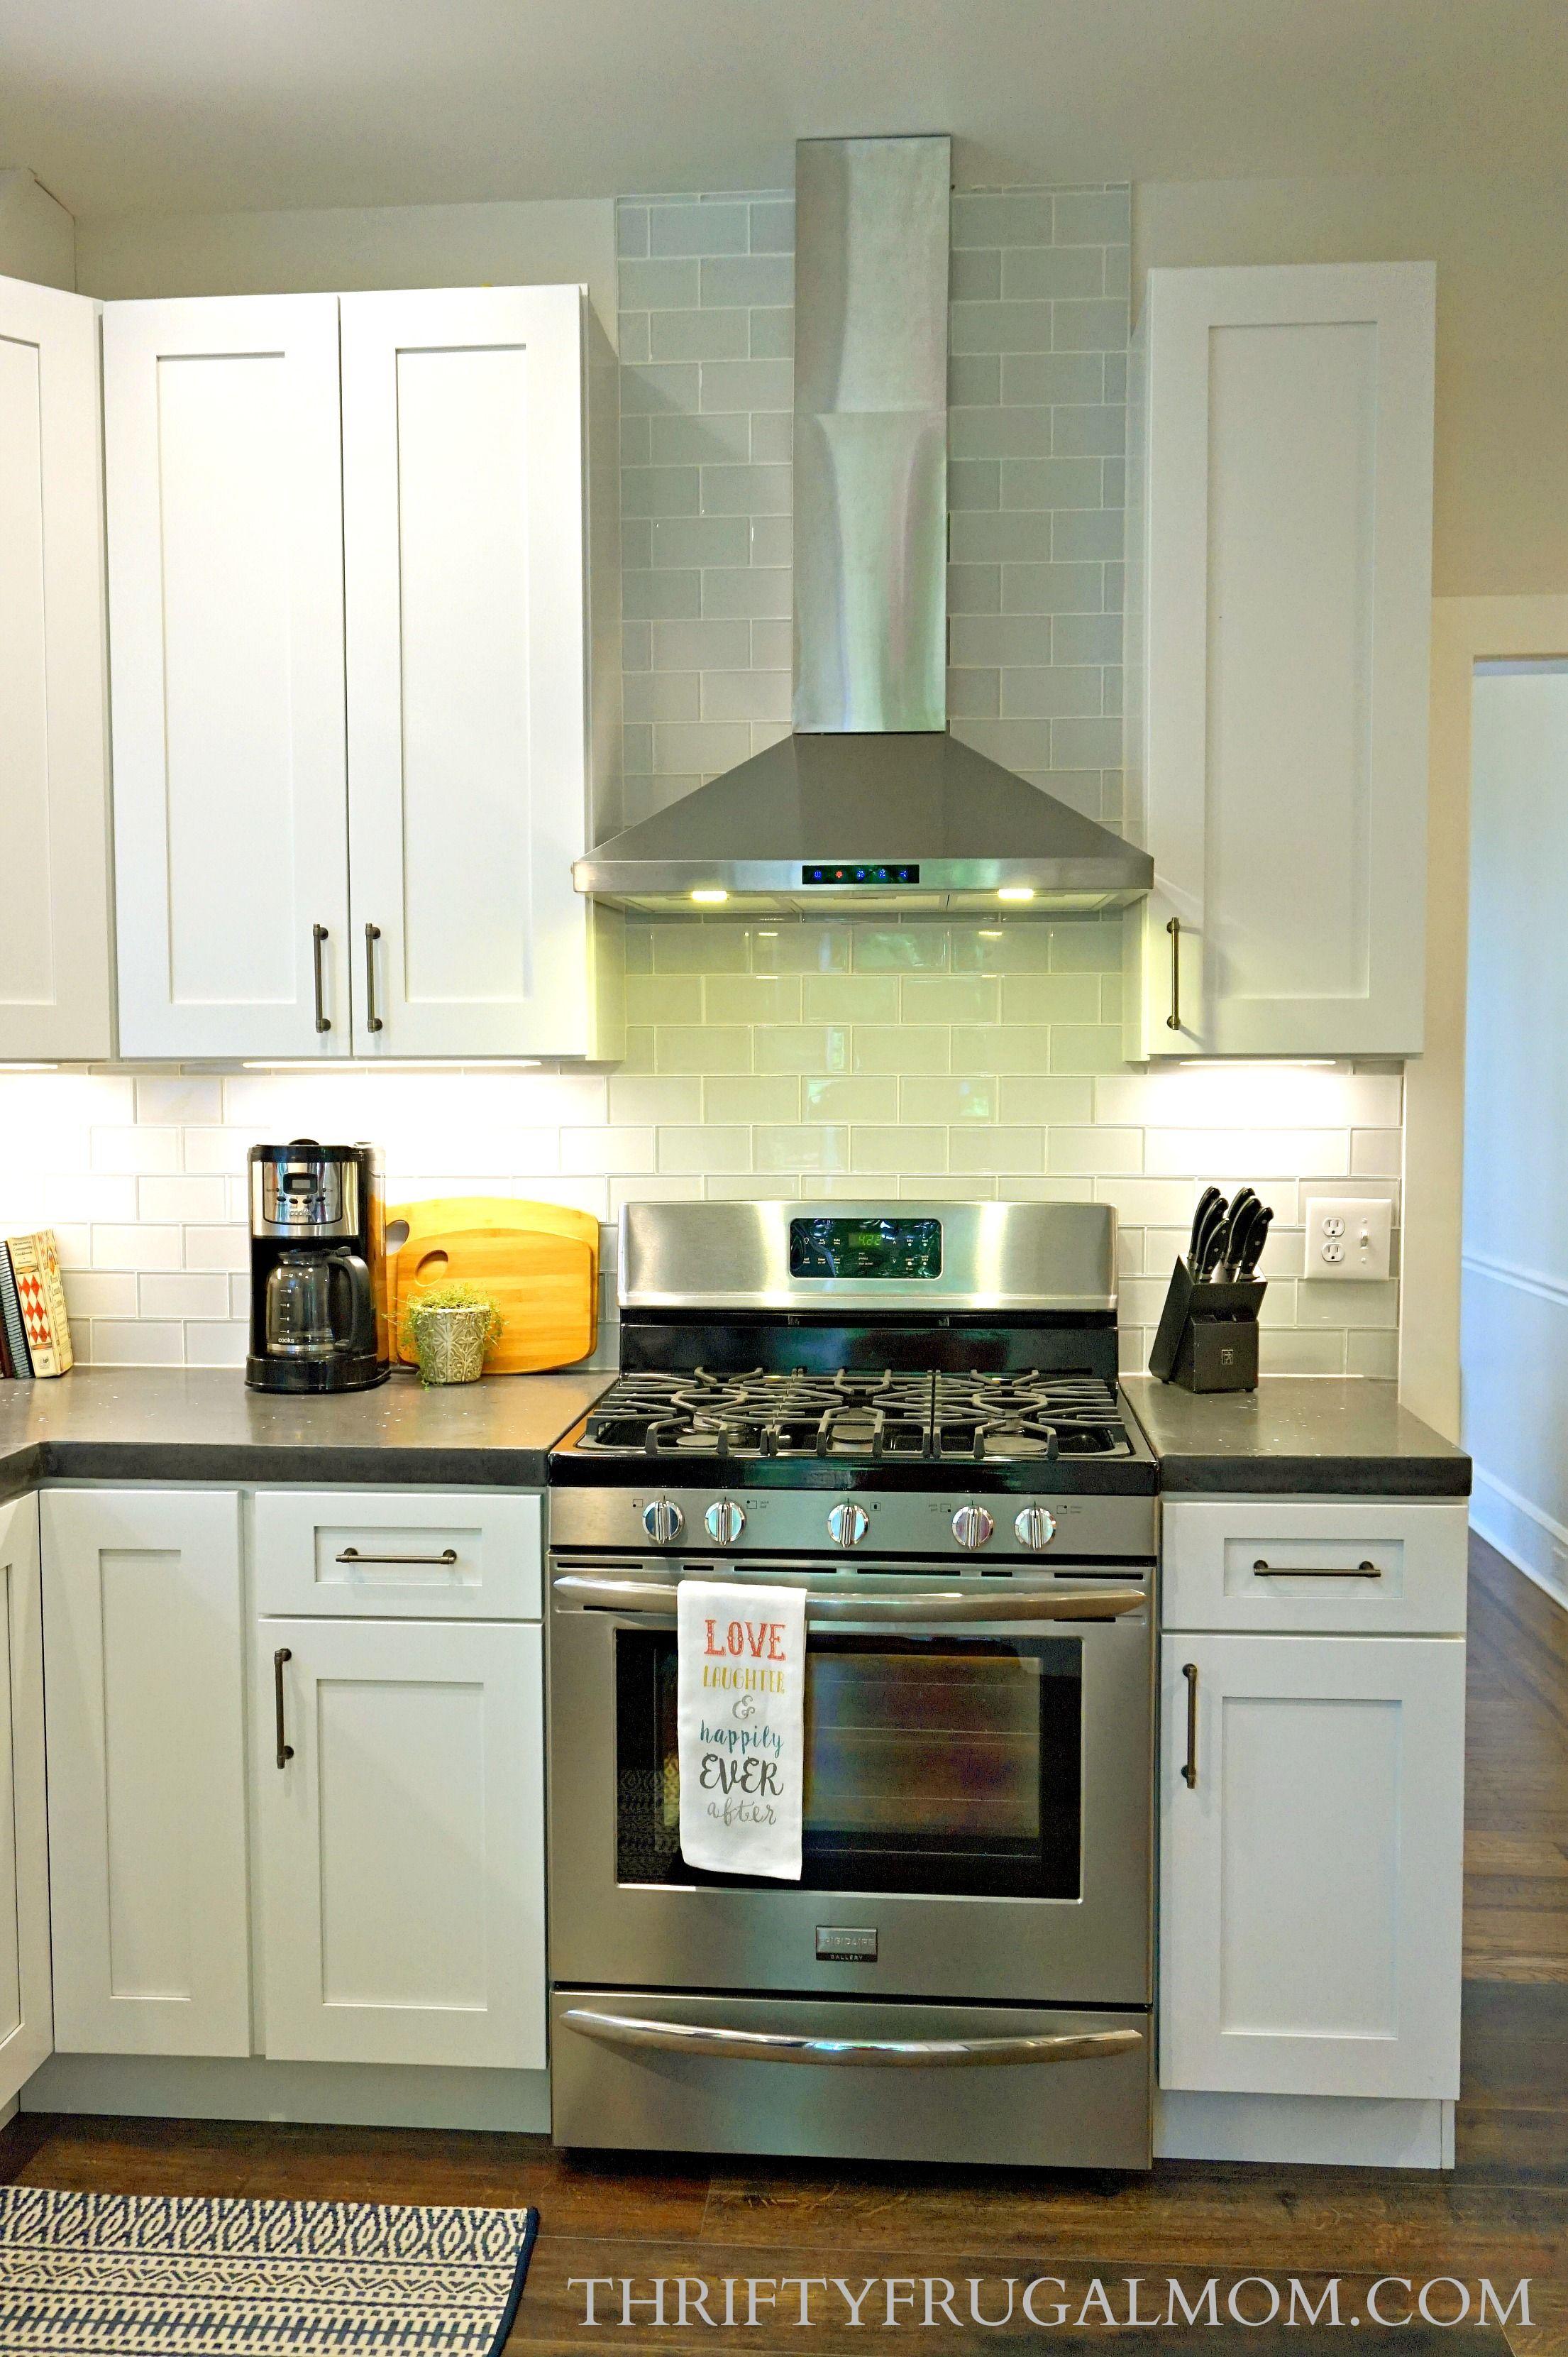 Budget Friendly Classic White Kitchen Remodel All The Details Thrifty Frugal Mom Budget Friendly Kitchen Remodel Frugal Kitchen Kitchen On A Budget